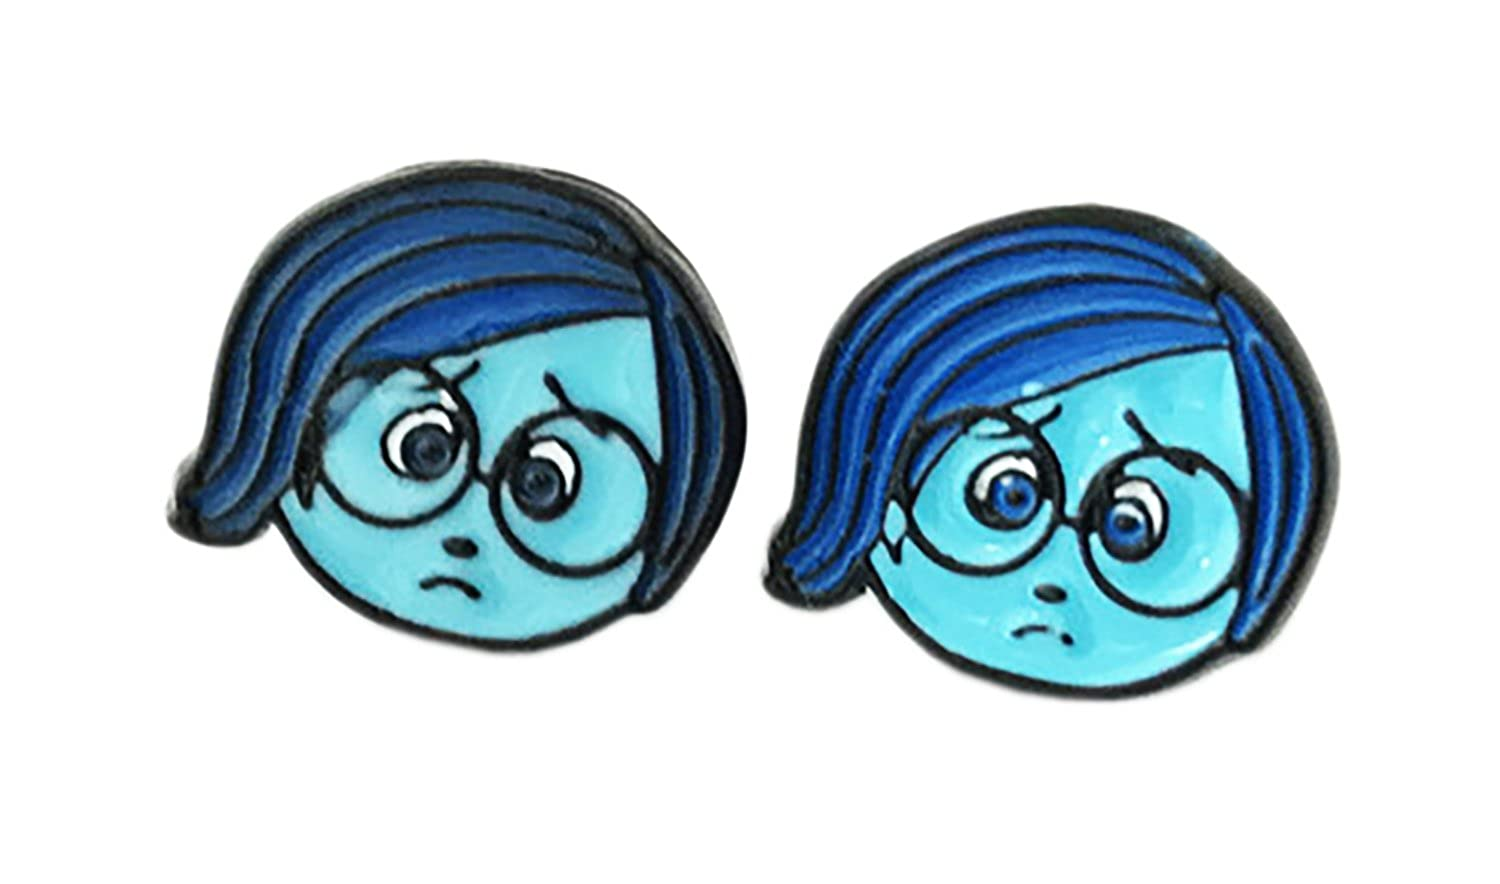 Sadness Inside Out Stud Earrings With Gift Box from Outlander Gear